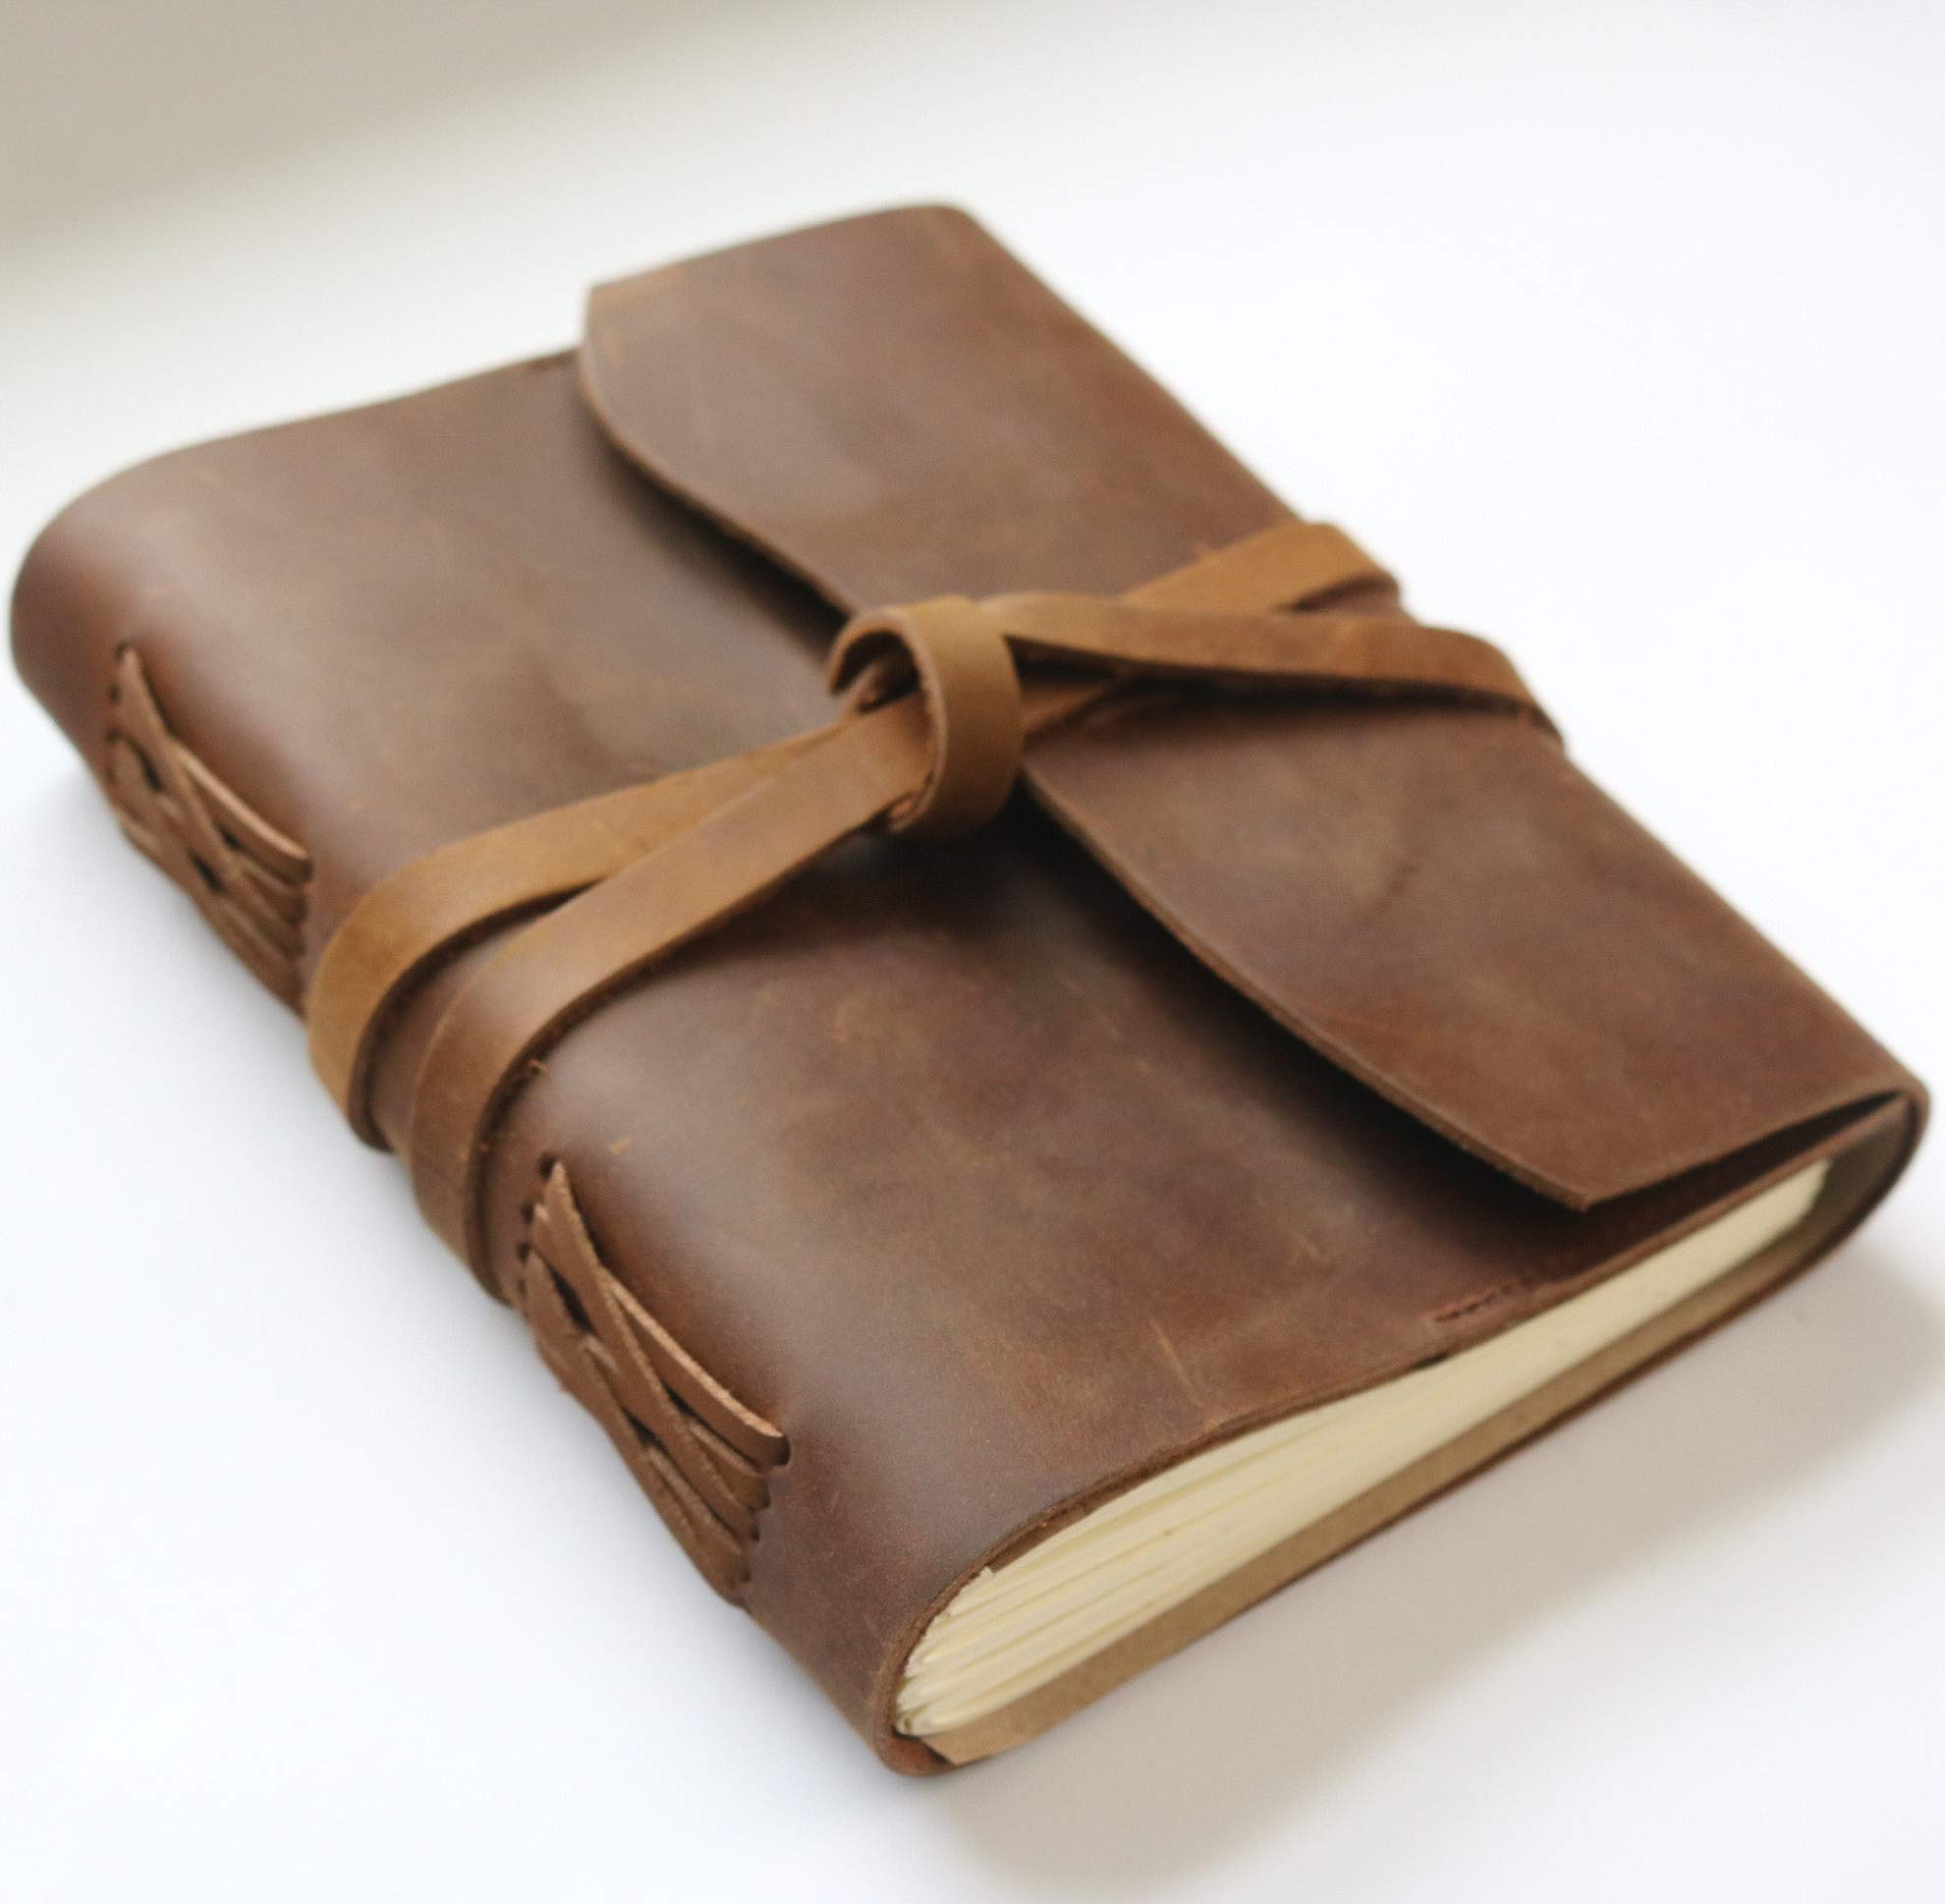 Handmade Leather Journal Notebook with Pocket, Bookmark Ribbon and Pen Holder-Antique Aged Leather Sketchbook for Writing, Drawing, School and Work